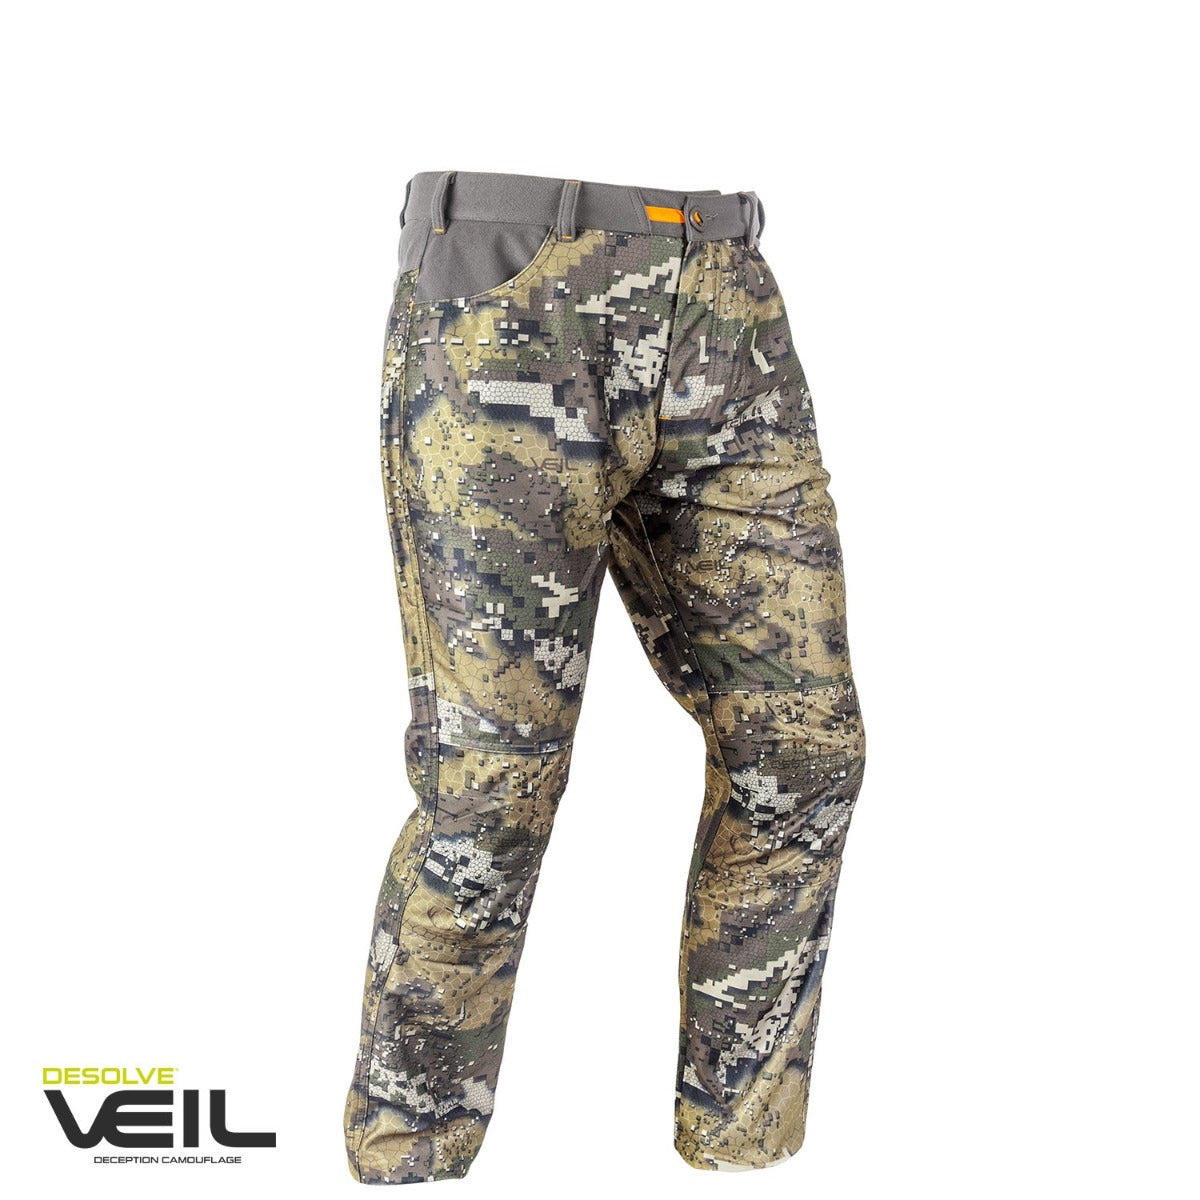 Hunters Element Macaulay Trouser Desolve Veil Camouflage